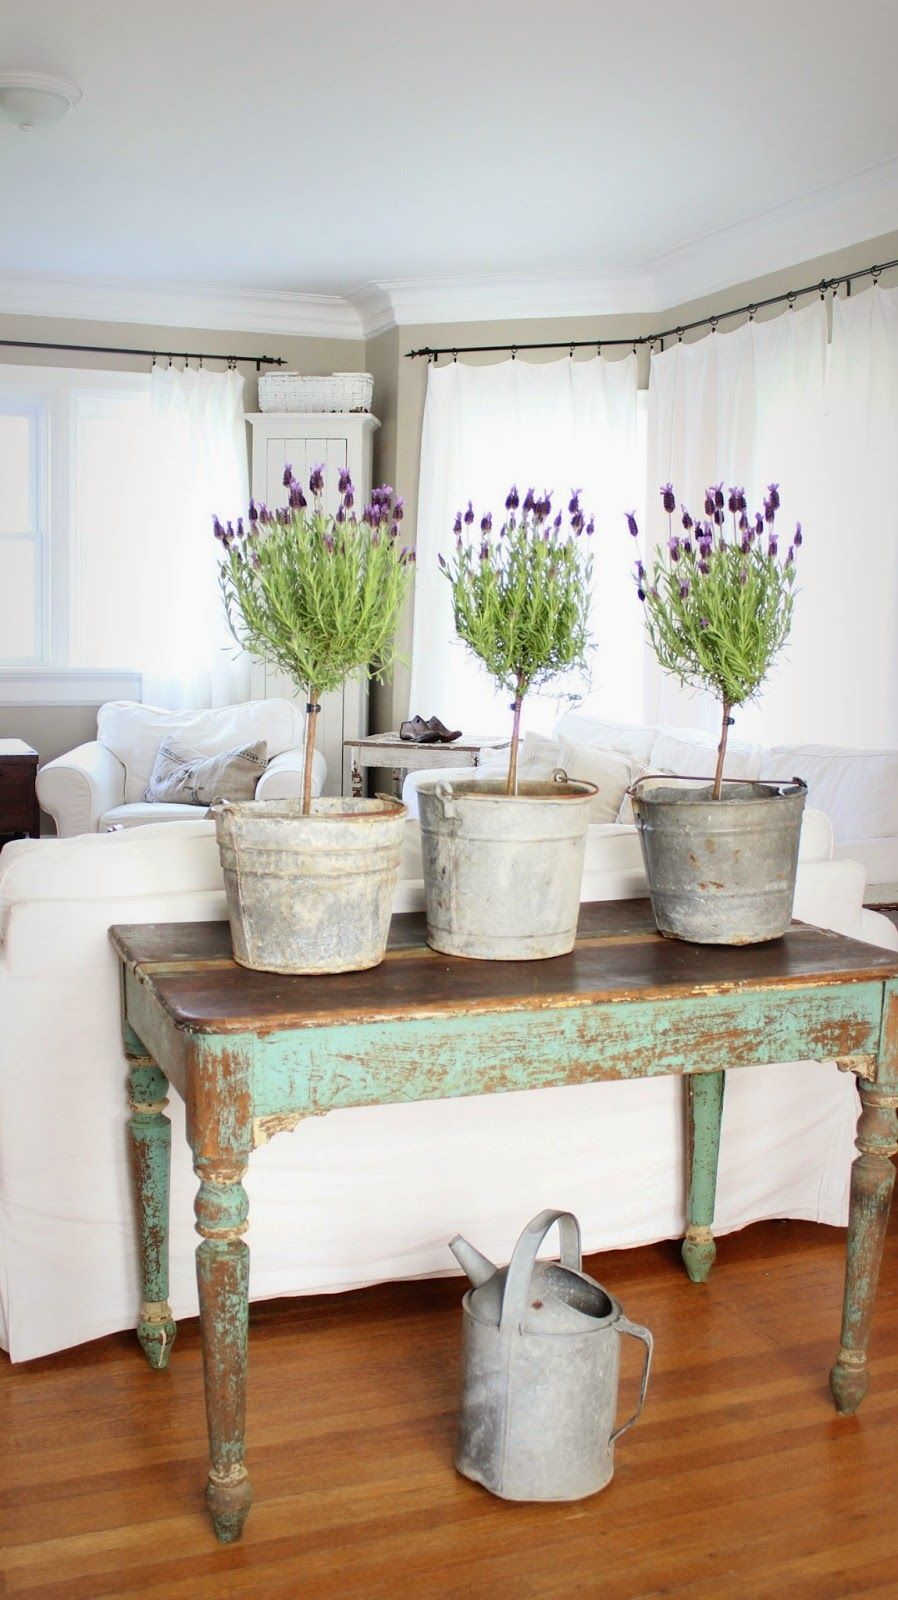 Lavender topiaries in galvanized buckets lovely distressed